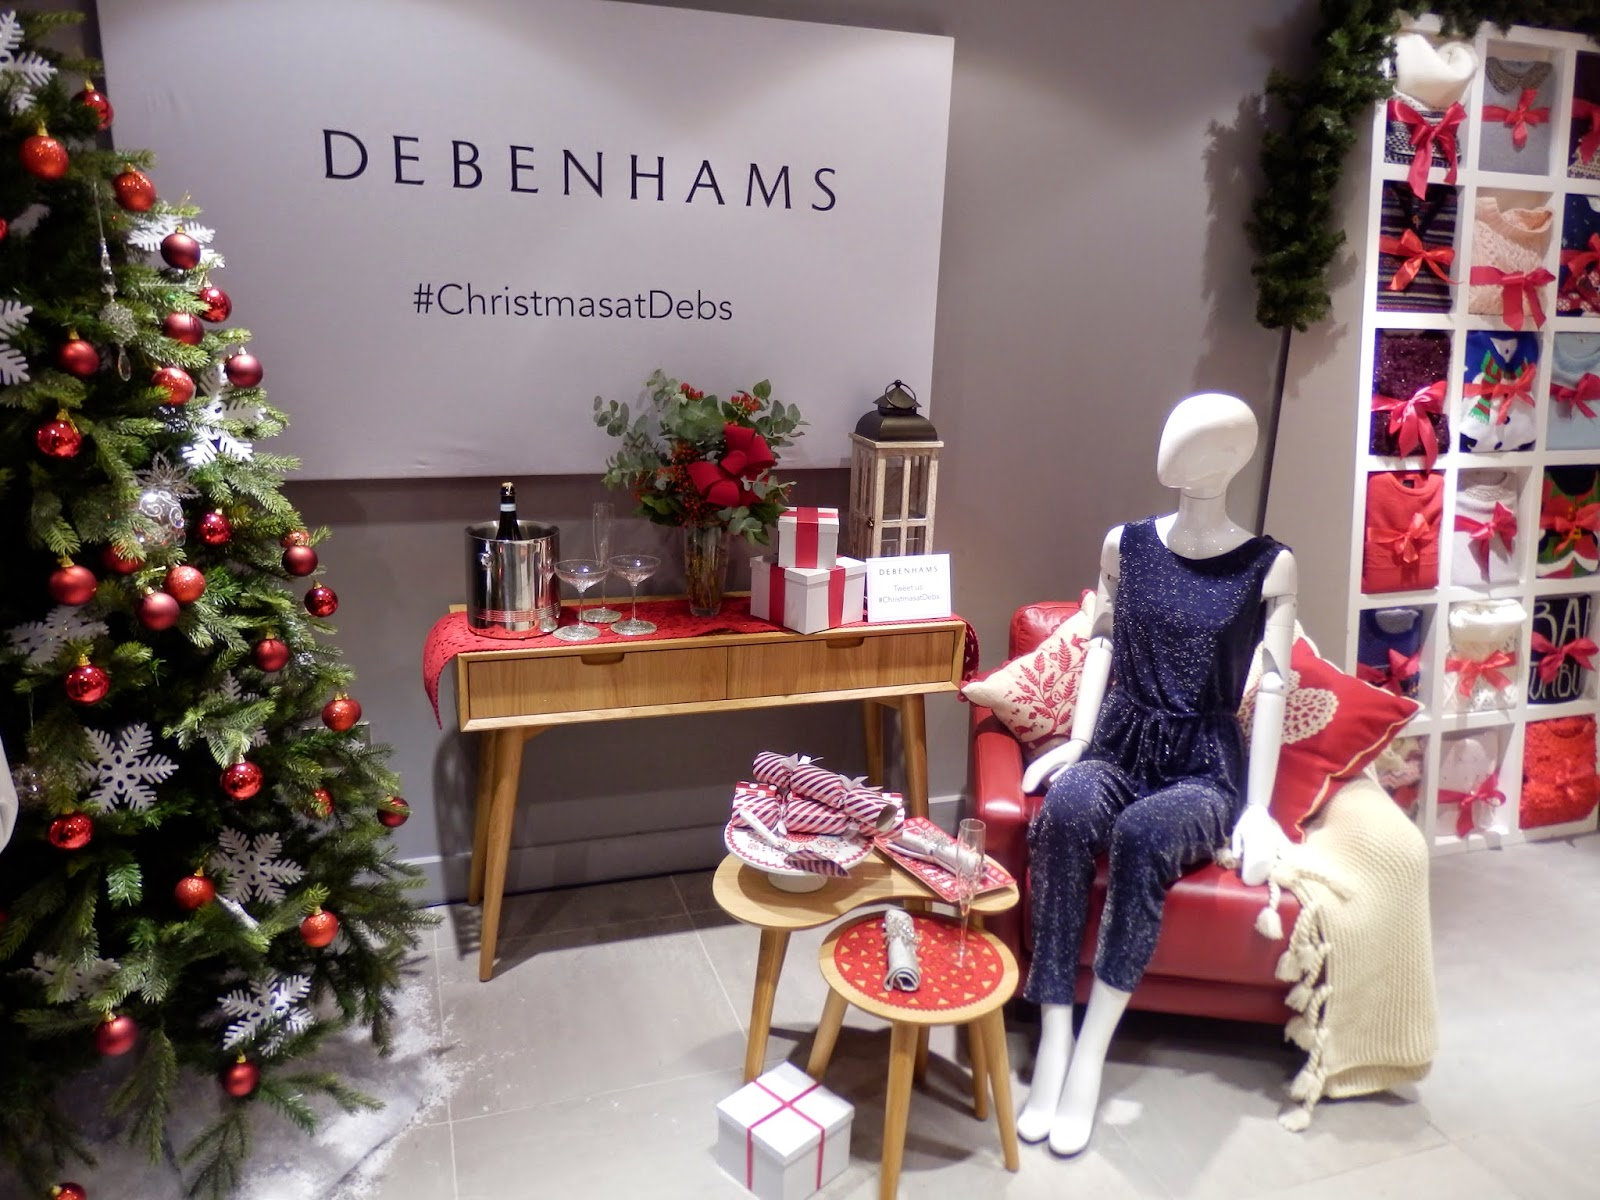 Doyounoah Christmas 2014 Has Arrived At Debenhams